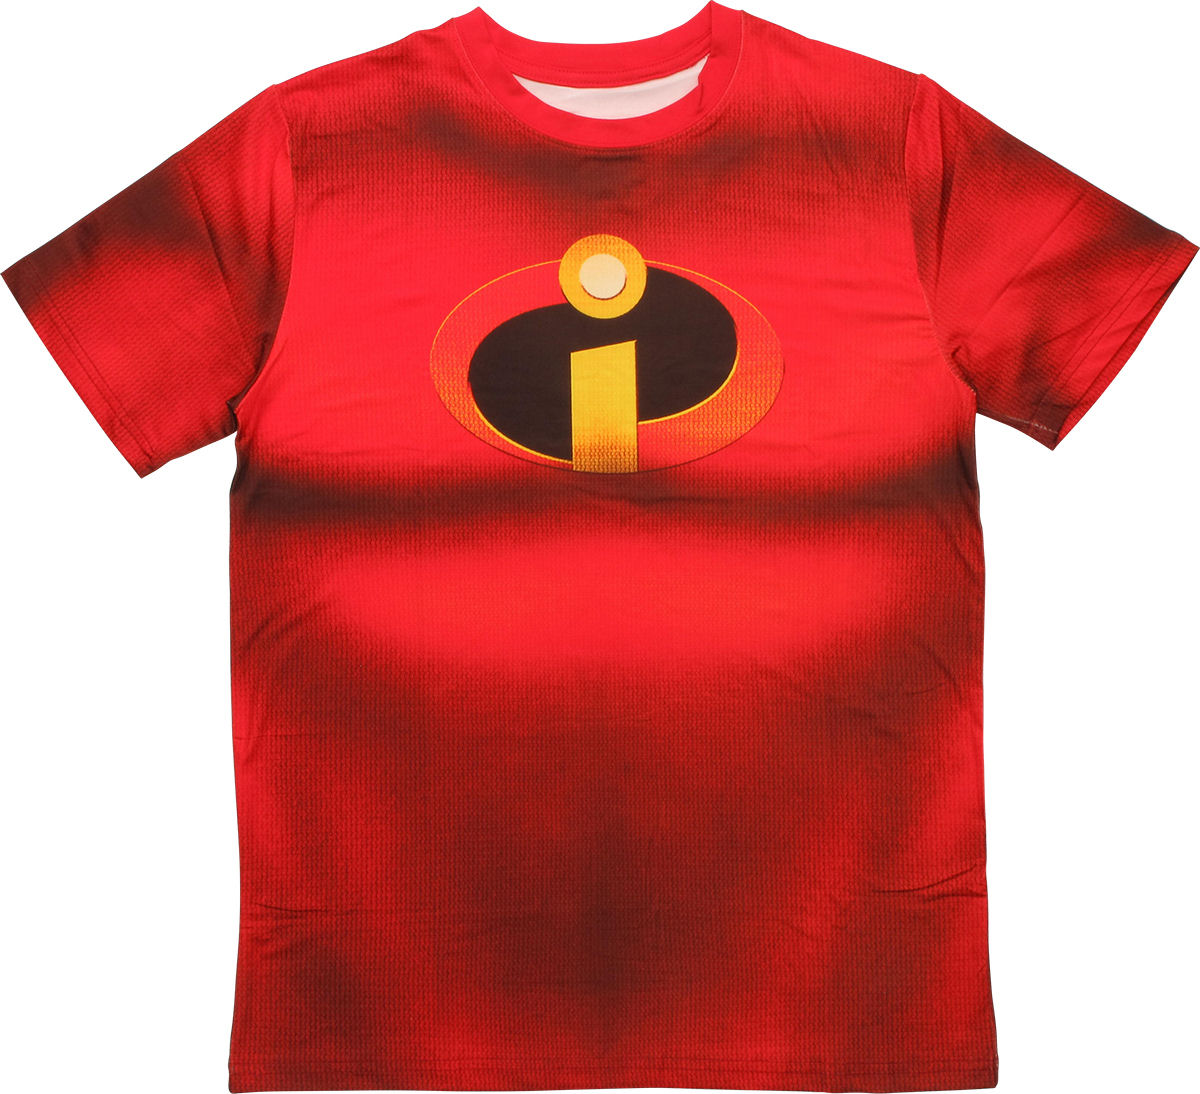 Incredibles sublimated costume t shirt sheer for Costume t shirts online